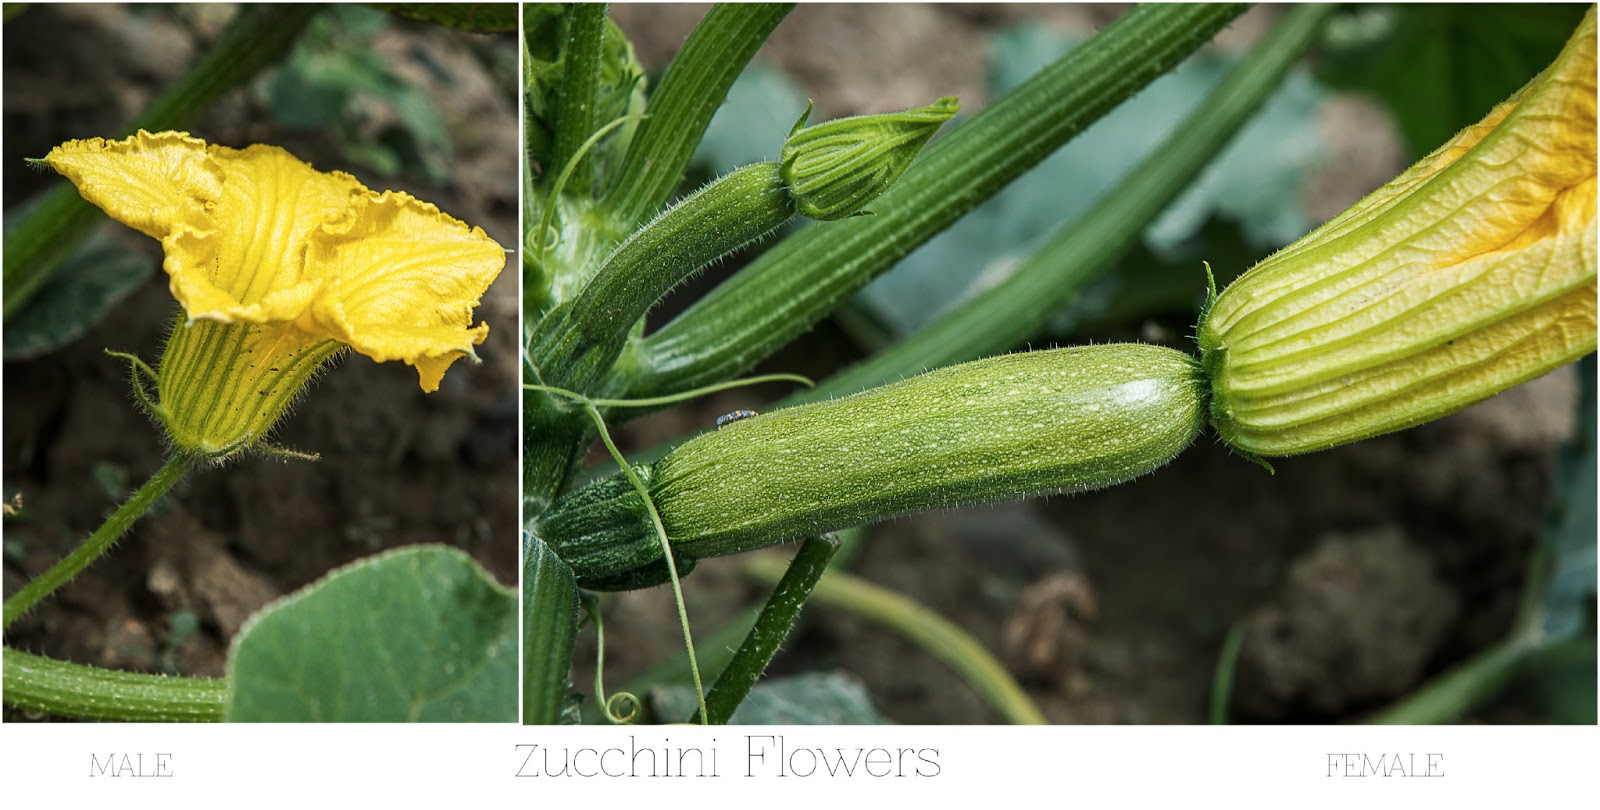 how to tell a male zucchini flower from a female